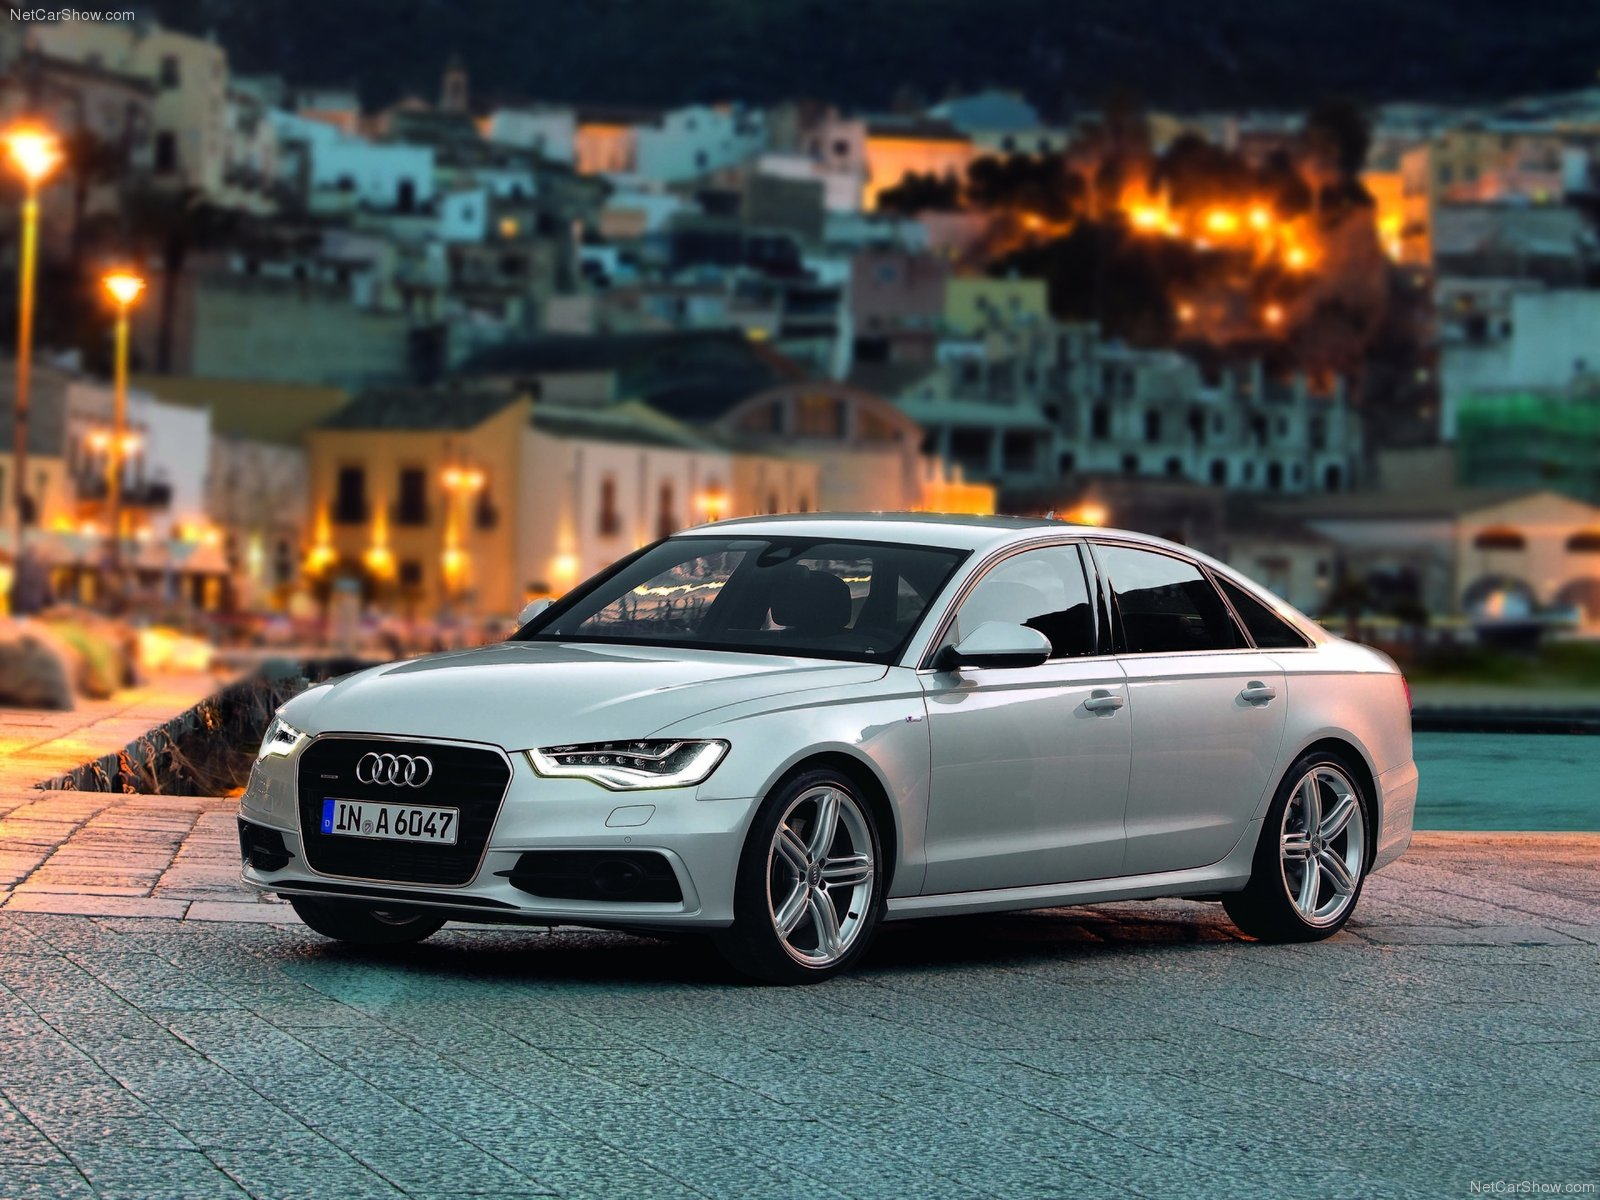 Free Download Audi A6 Wallpapers Full Hd Pictures 1600x1200 For Your Desktop Mobile Tablet Explore 98 Audi A6 Wallpapers Audi A6 Wallpapers Audi A6 Allroad Audi A6 Wallpaper